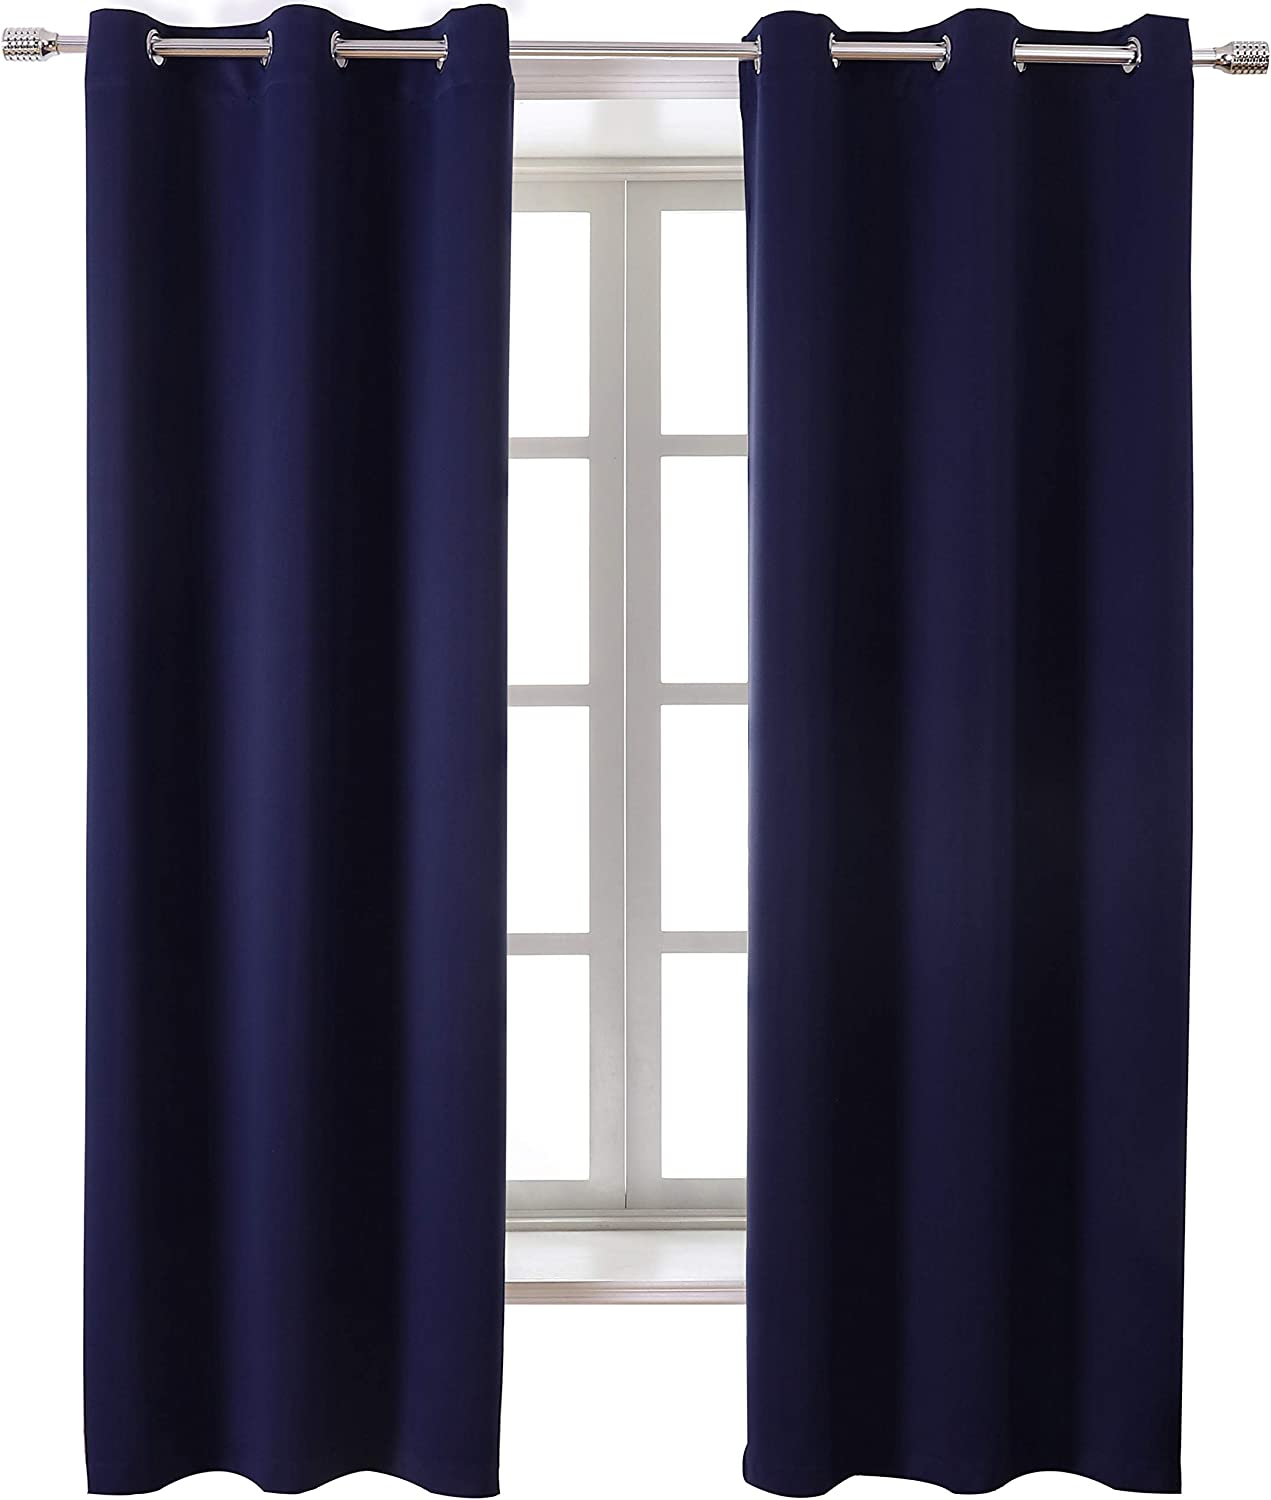 WONTEX Blackout Curtains Room Darkening Thermal Insulated with Grommet Window Curtain for Bedroom, 42 x 84 inch, Navy, 2 Panels